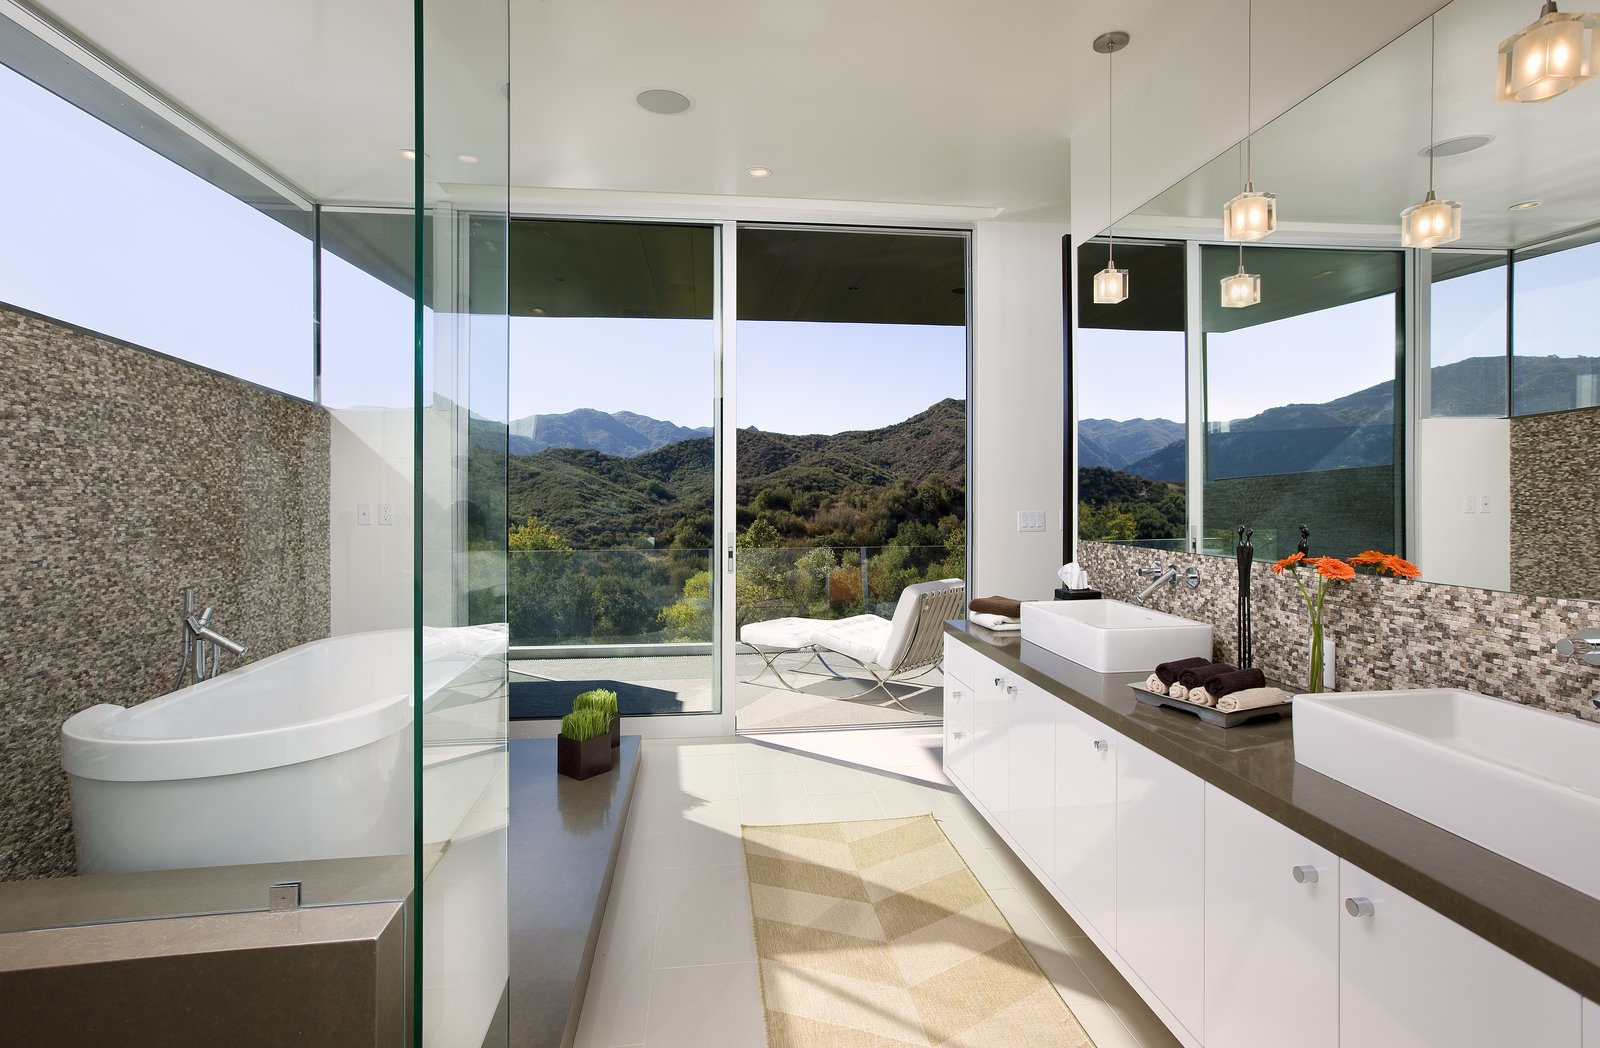 A stunning bathroom opens onto a patio for striking canyon views.   Lima Residence by Abramson Teiger Architects